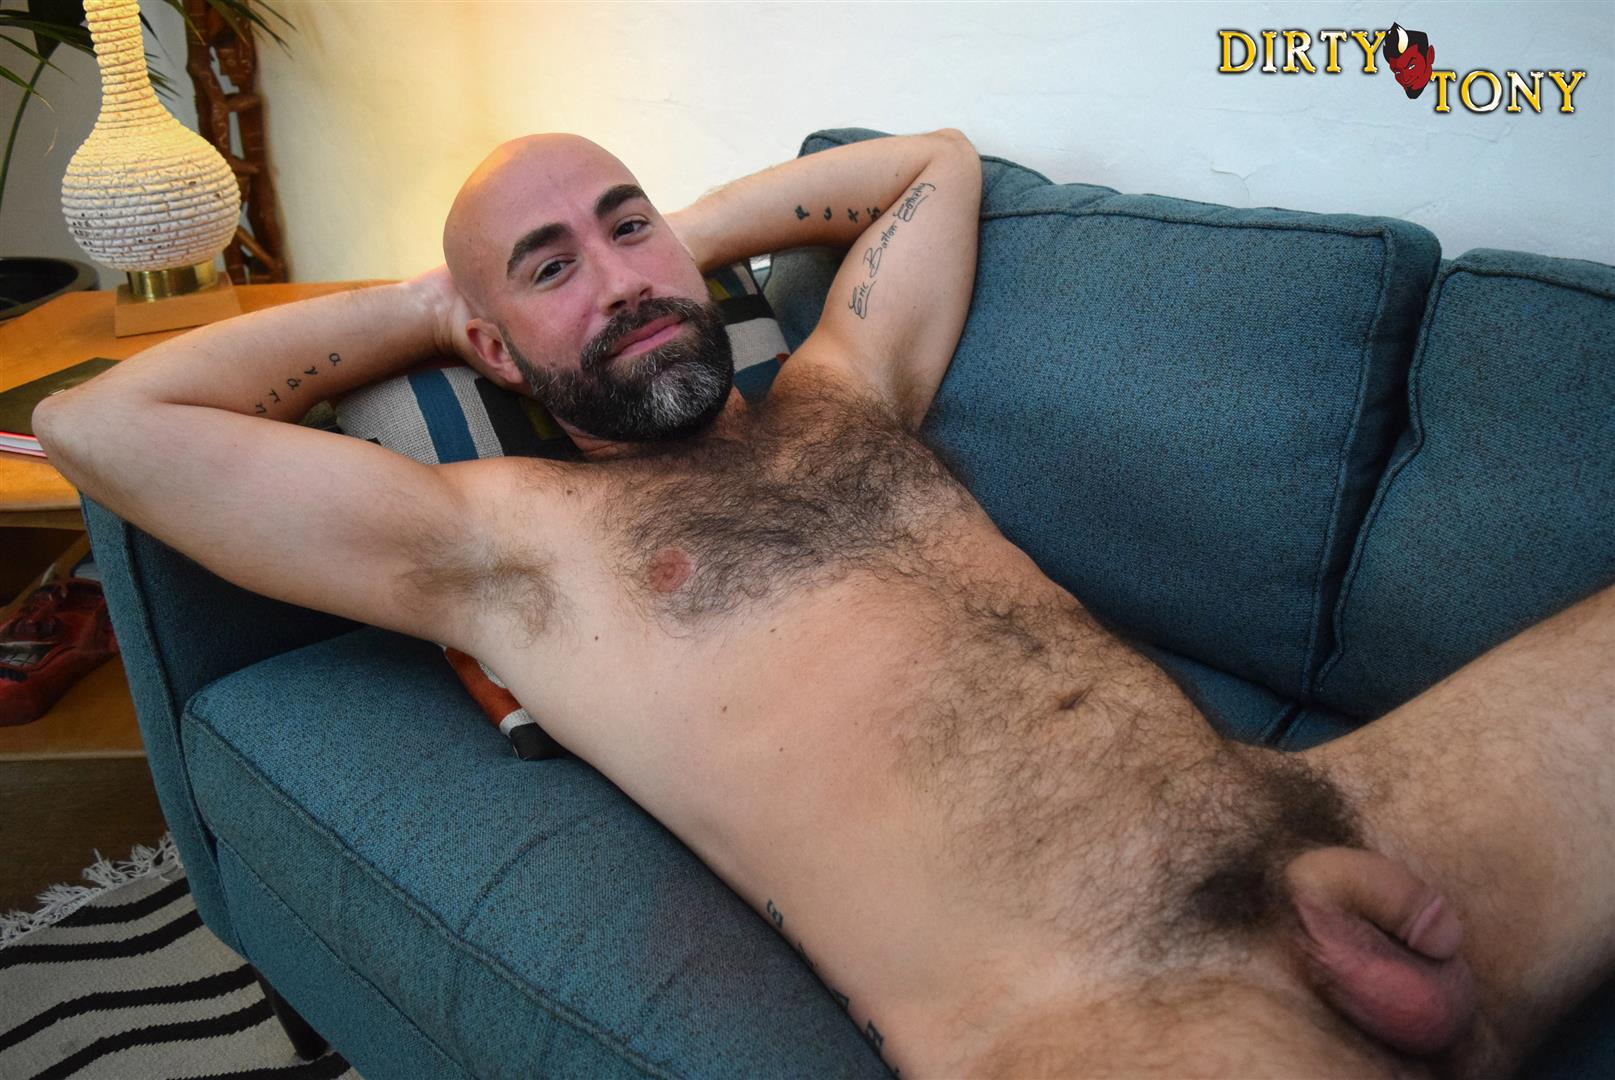 Dirty-Tony-Damon-Andros-Hairy-Otter-With-A-Thick-Cock-Amateur-Gay-Porn-04 Jocked Up Furry Otter Stroking His Thick Cock